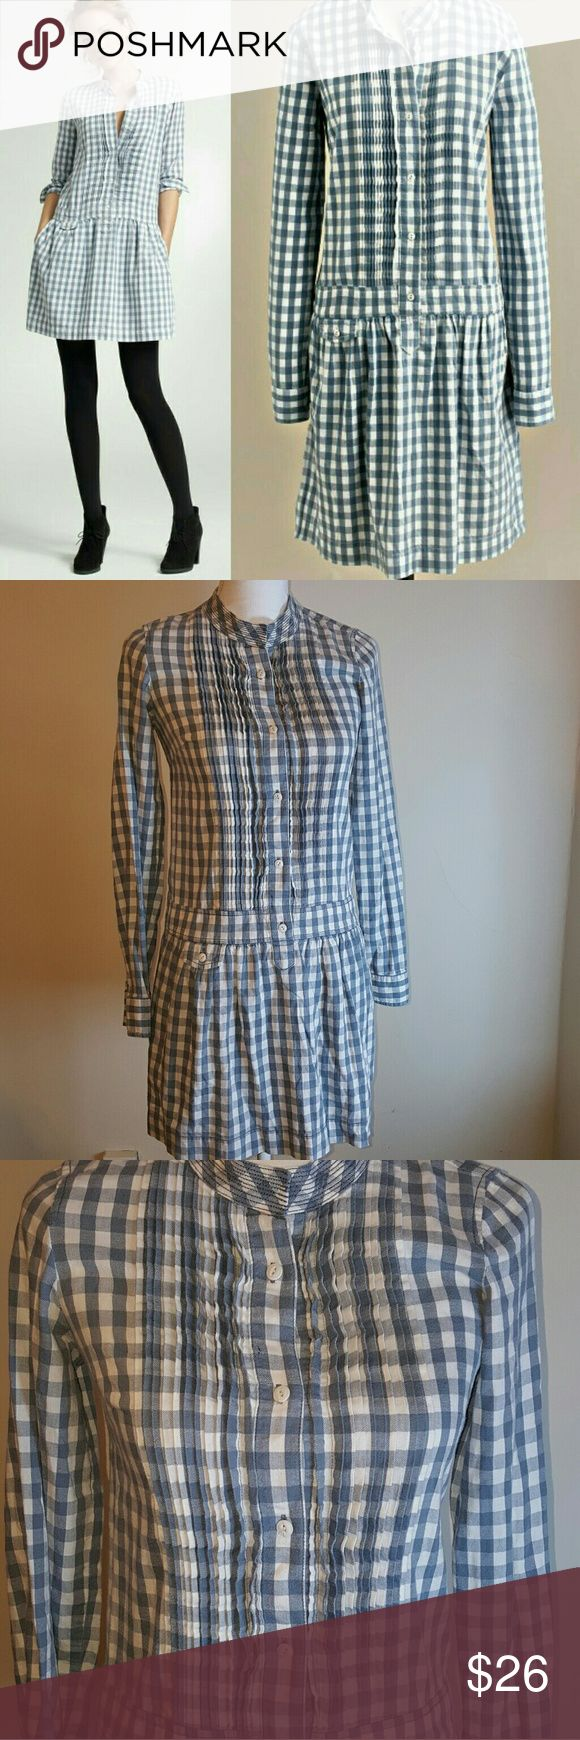 J.Crew Gingham Sundrine Flannel Shirtdress Super cute checkered flannel shirt dress from J. Crew with a drop waist. Is a size 00 but fits more like a 2. Sold out online. Preworn but no defects or stains. J. Crew Dresses